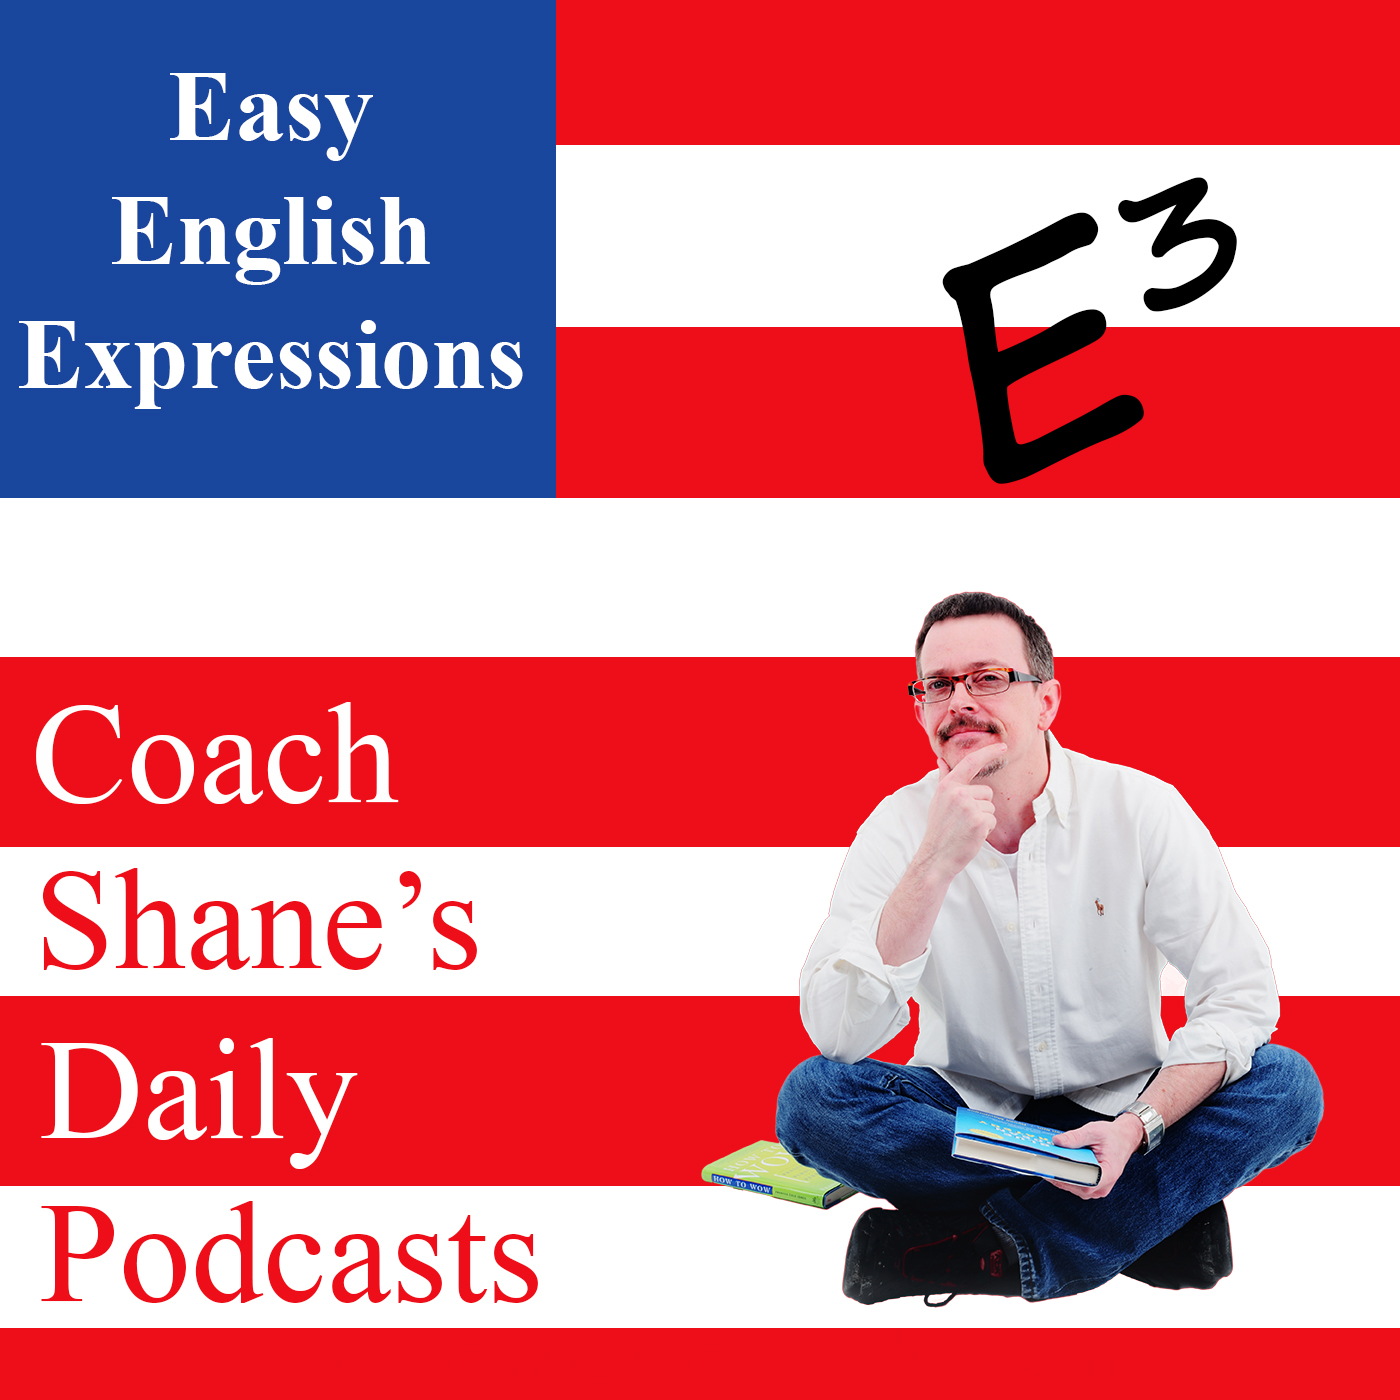 82 Daily Easy English Expression PODCAST—veggies